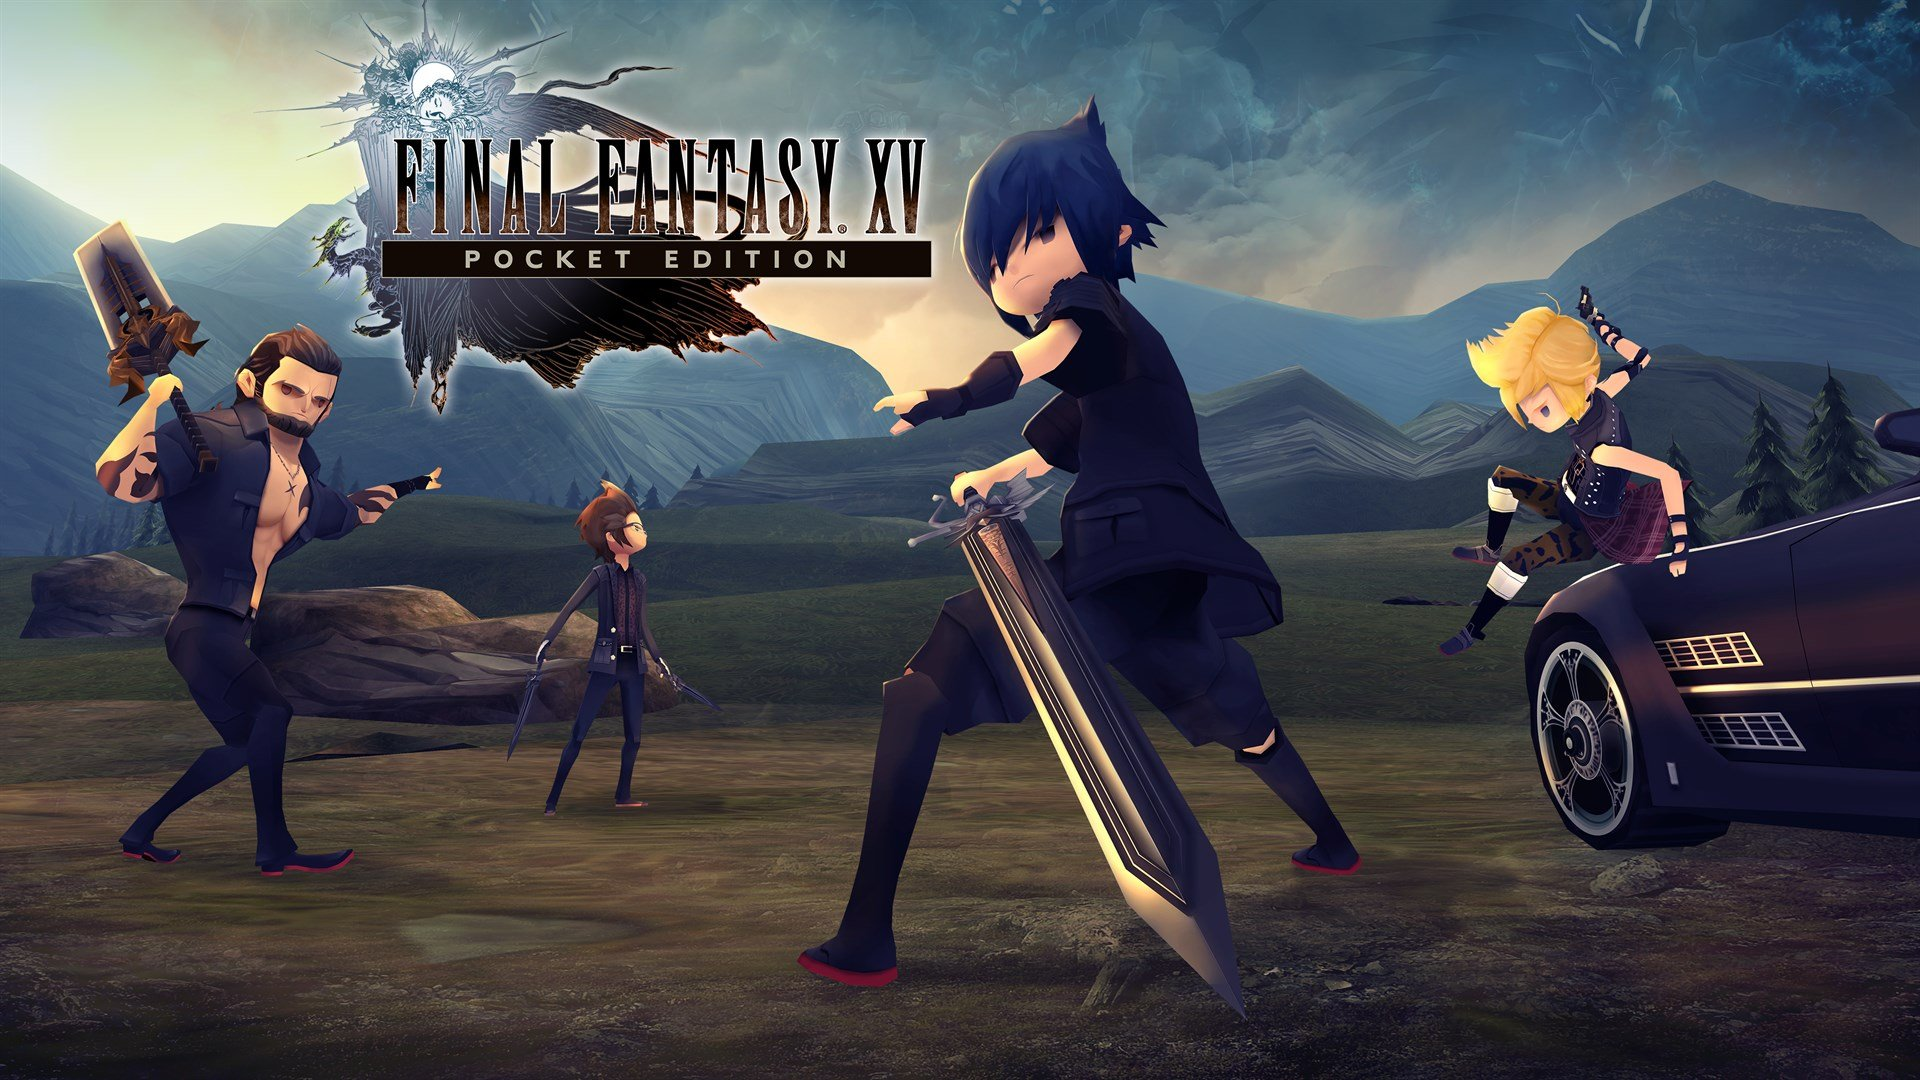 Final Fantasy Xv Pocket Edition Win 10 Achievement List Revealed